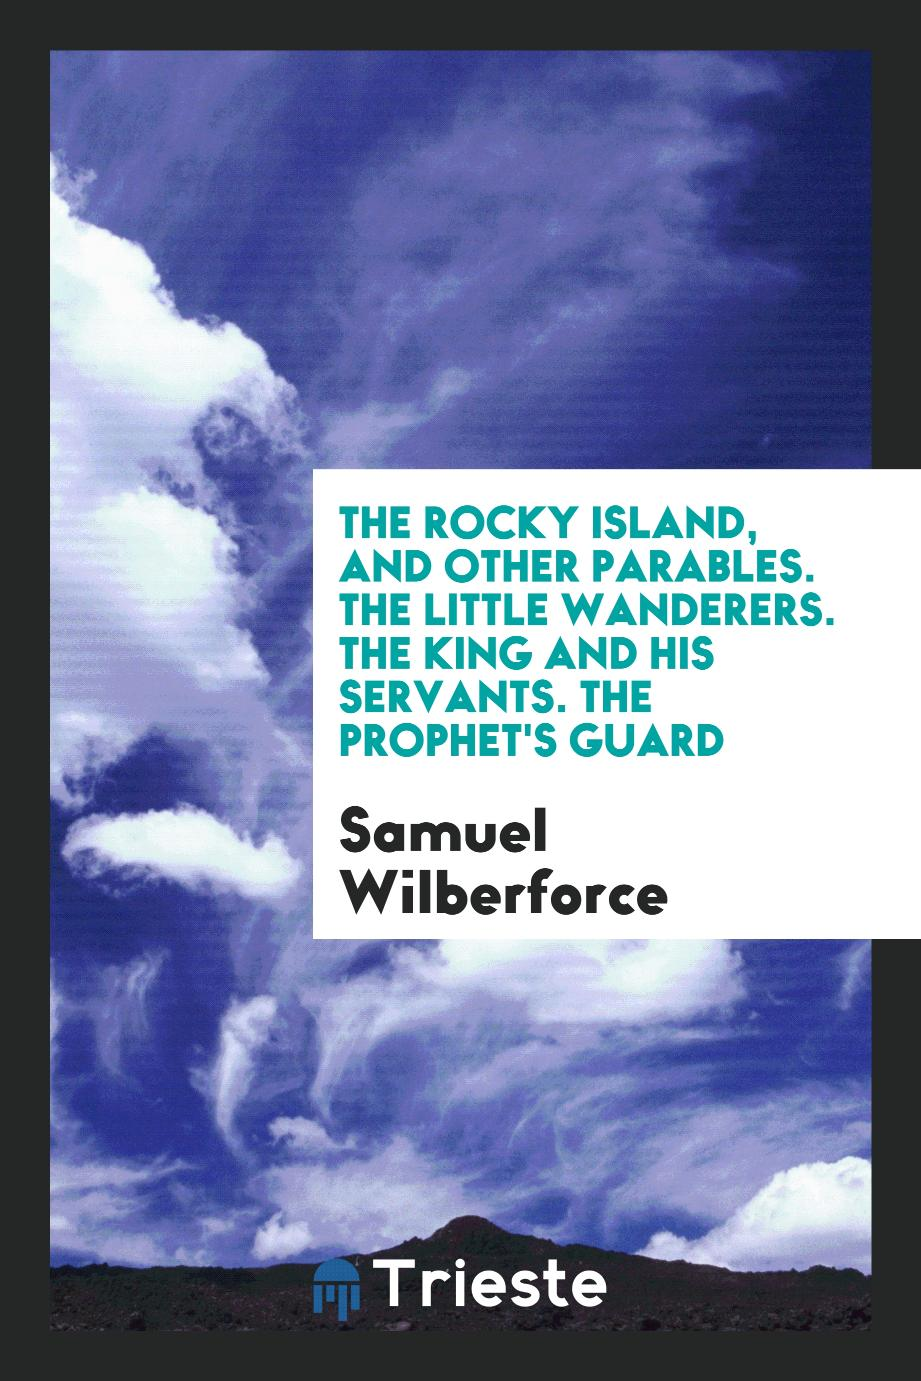 The Rocky Island, and Other Parables. The Little Wanderers. The King and His Servants. The Prophet's Guard